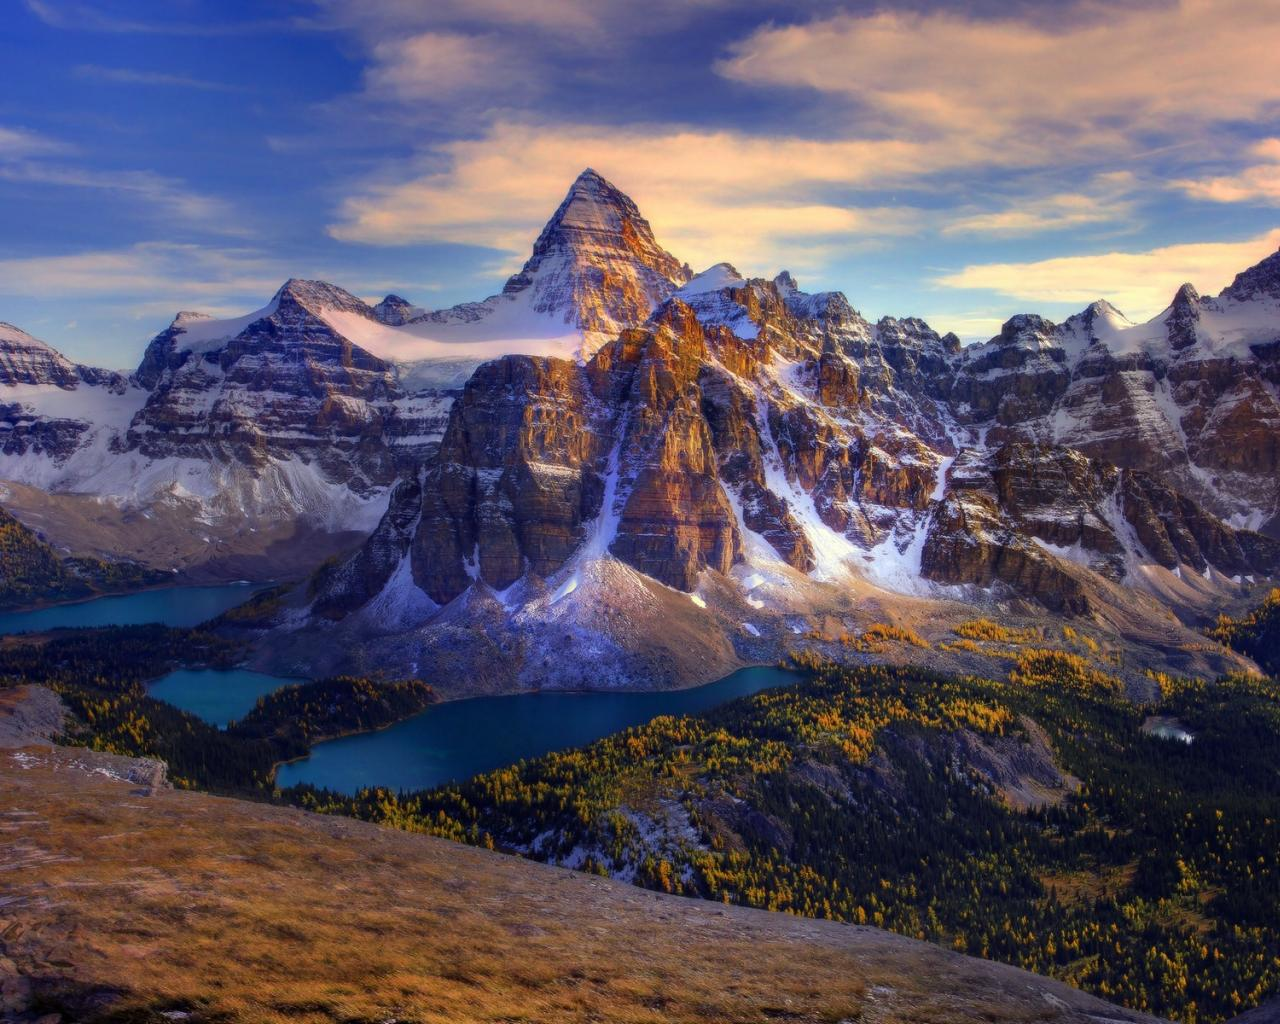 canada mount assiniboine canadian rockies lakes wallpaper 80036 1280x1024